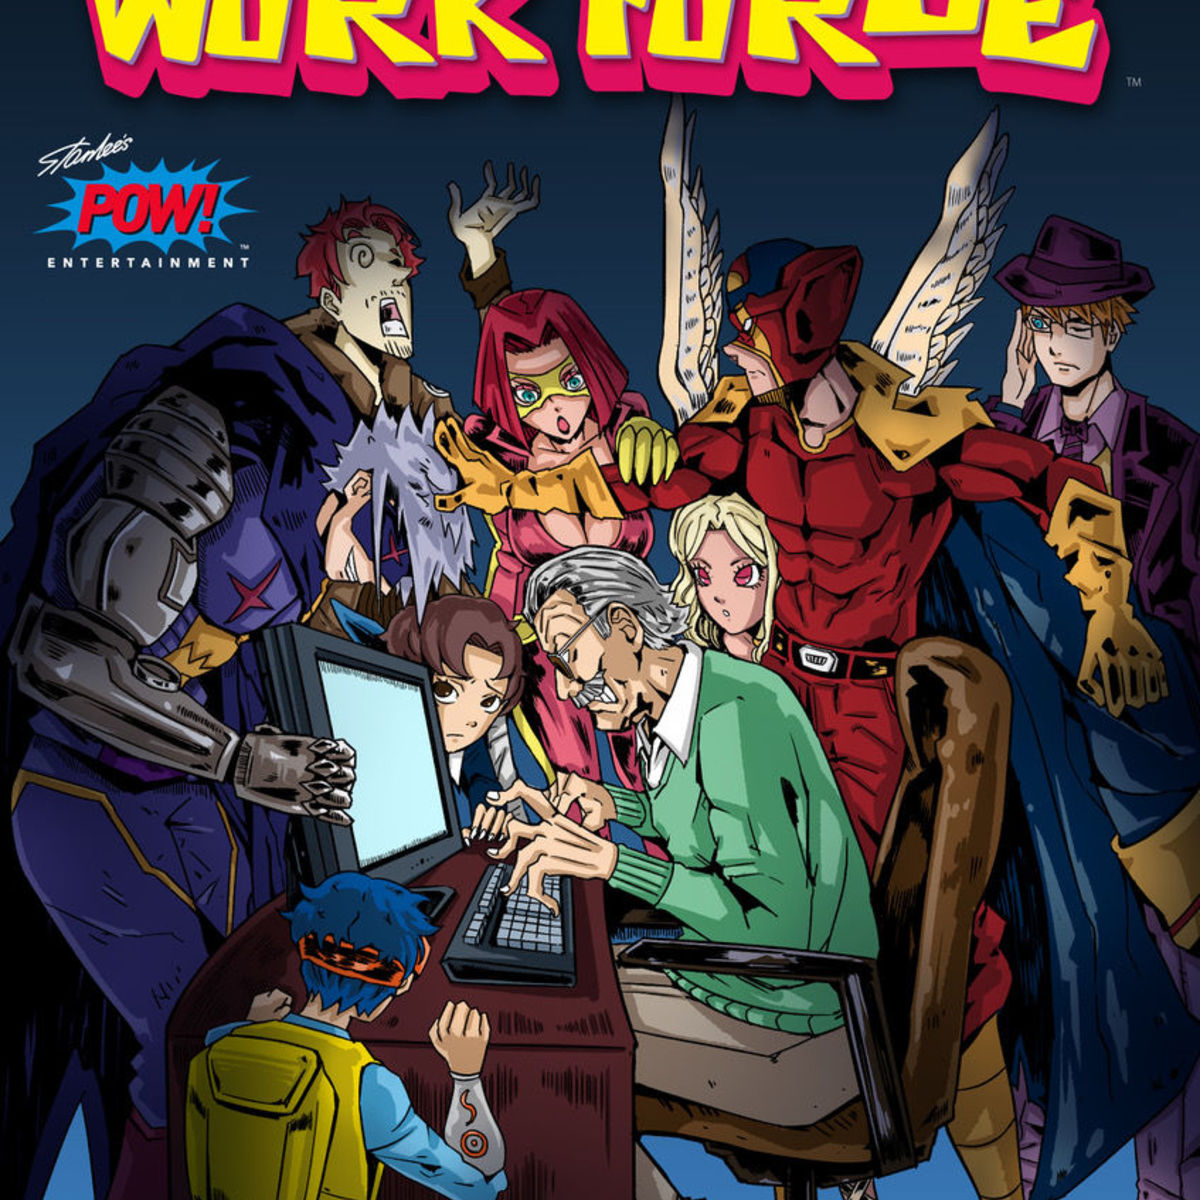 Entertainment releasing online comic Stan Lee's Work Force - see the cover